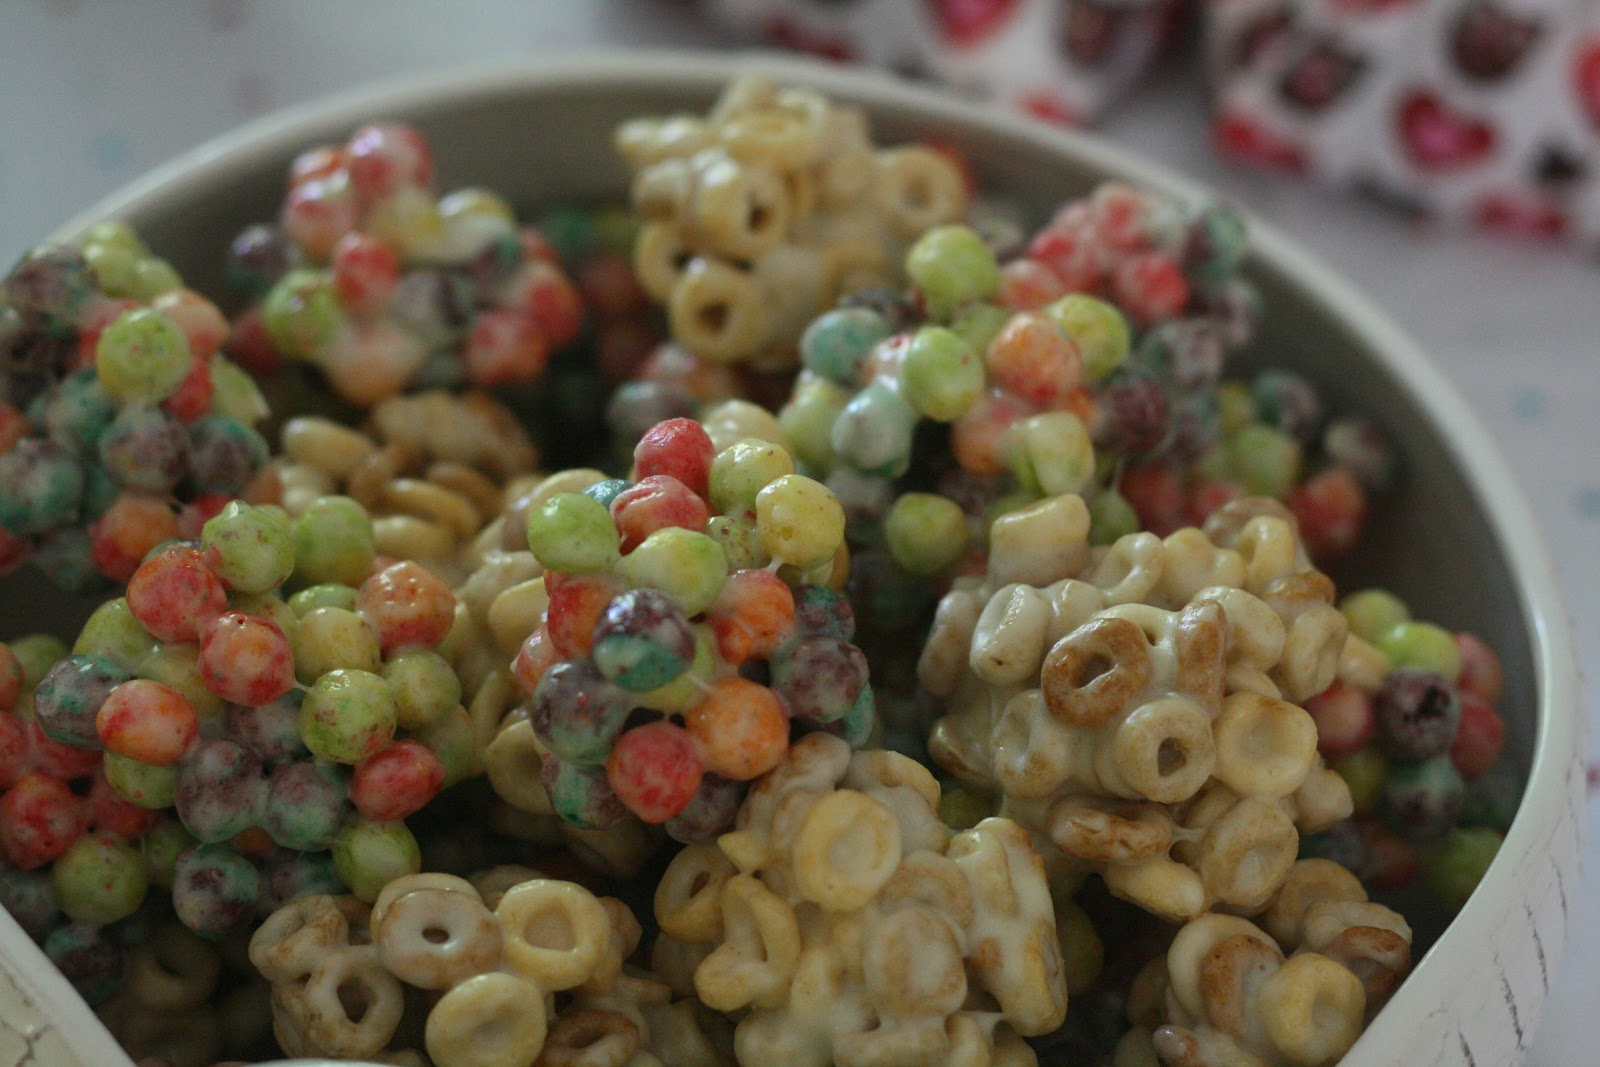 Seconds to change melted marshmallow cereal balls melted marshmallow cereal balls ccuart Images